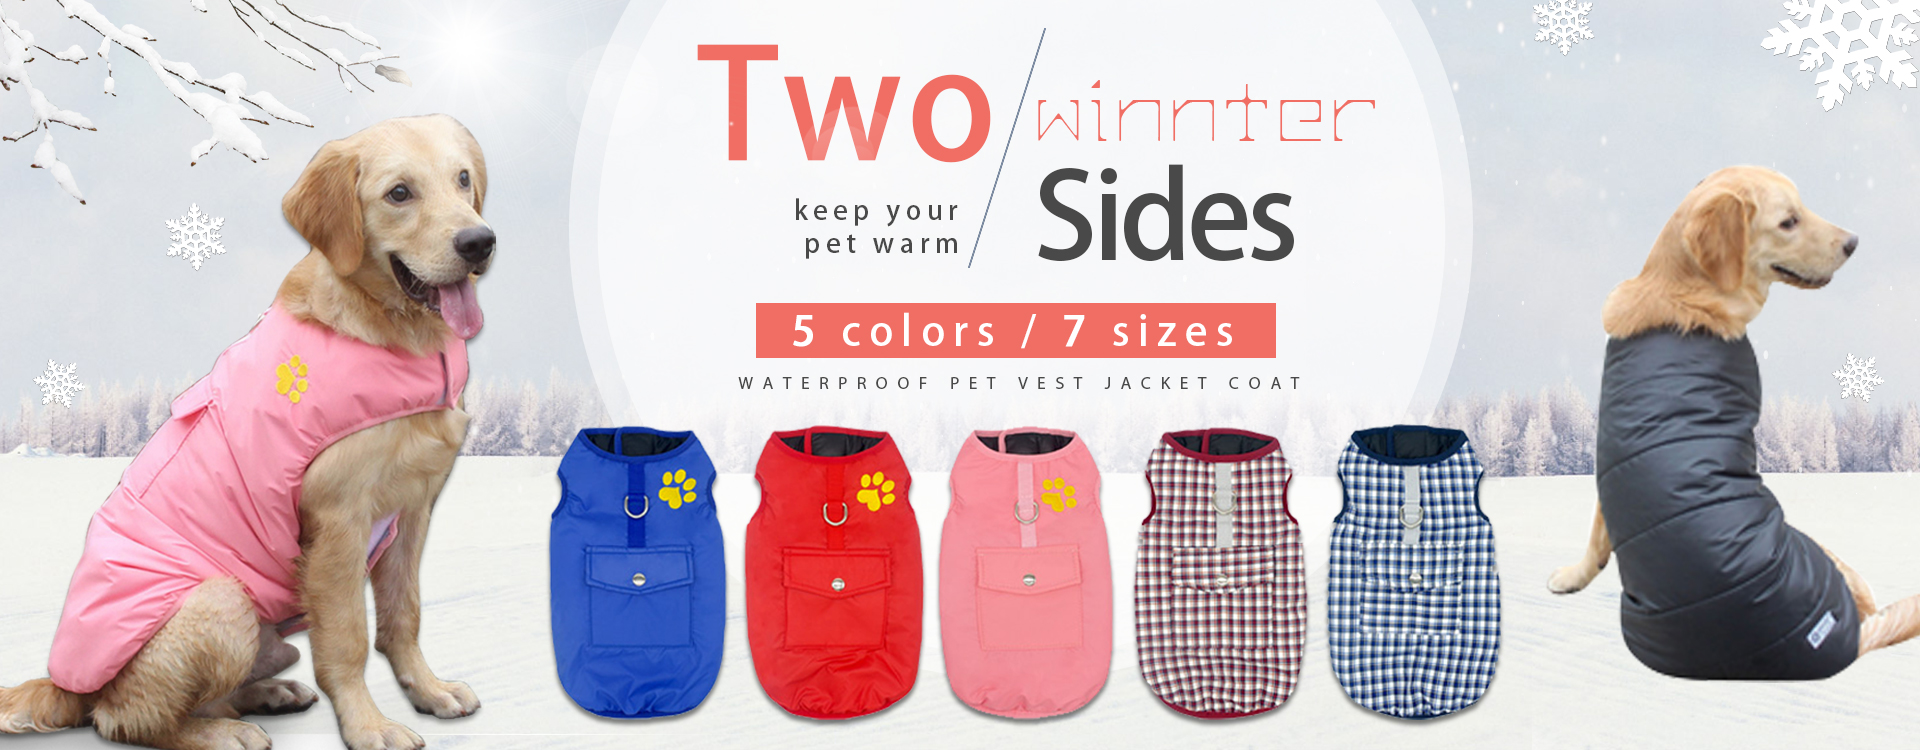 What pet products can you buy online? 5